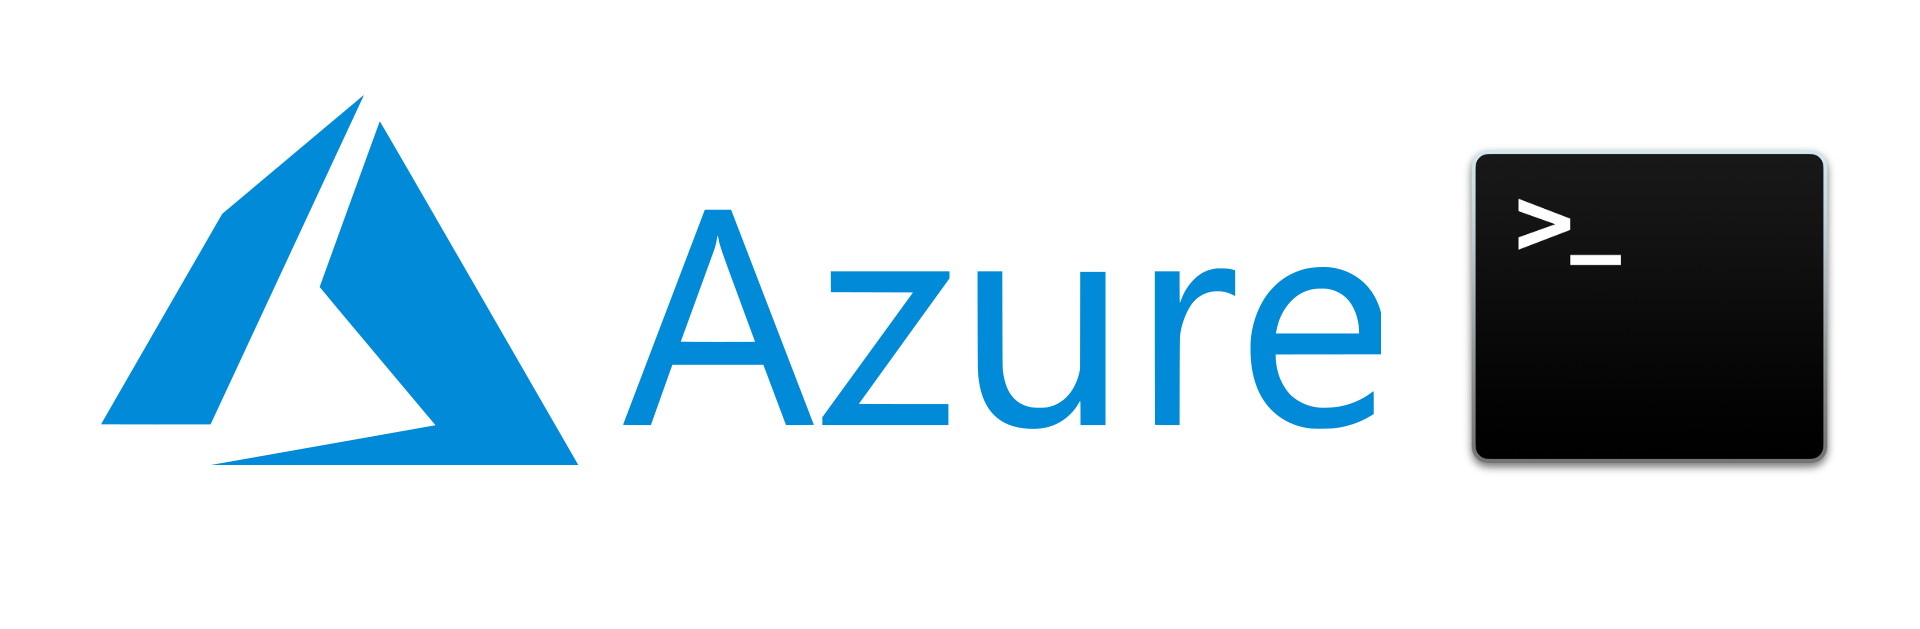 Install Azure CLI 2.0 on macOS with brew